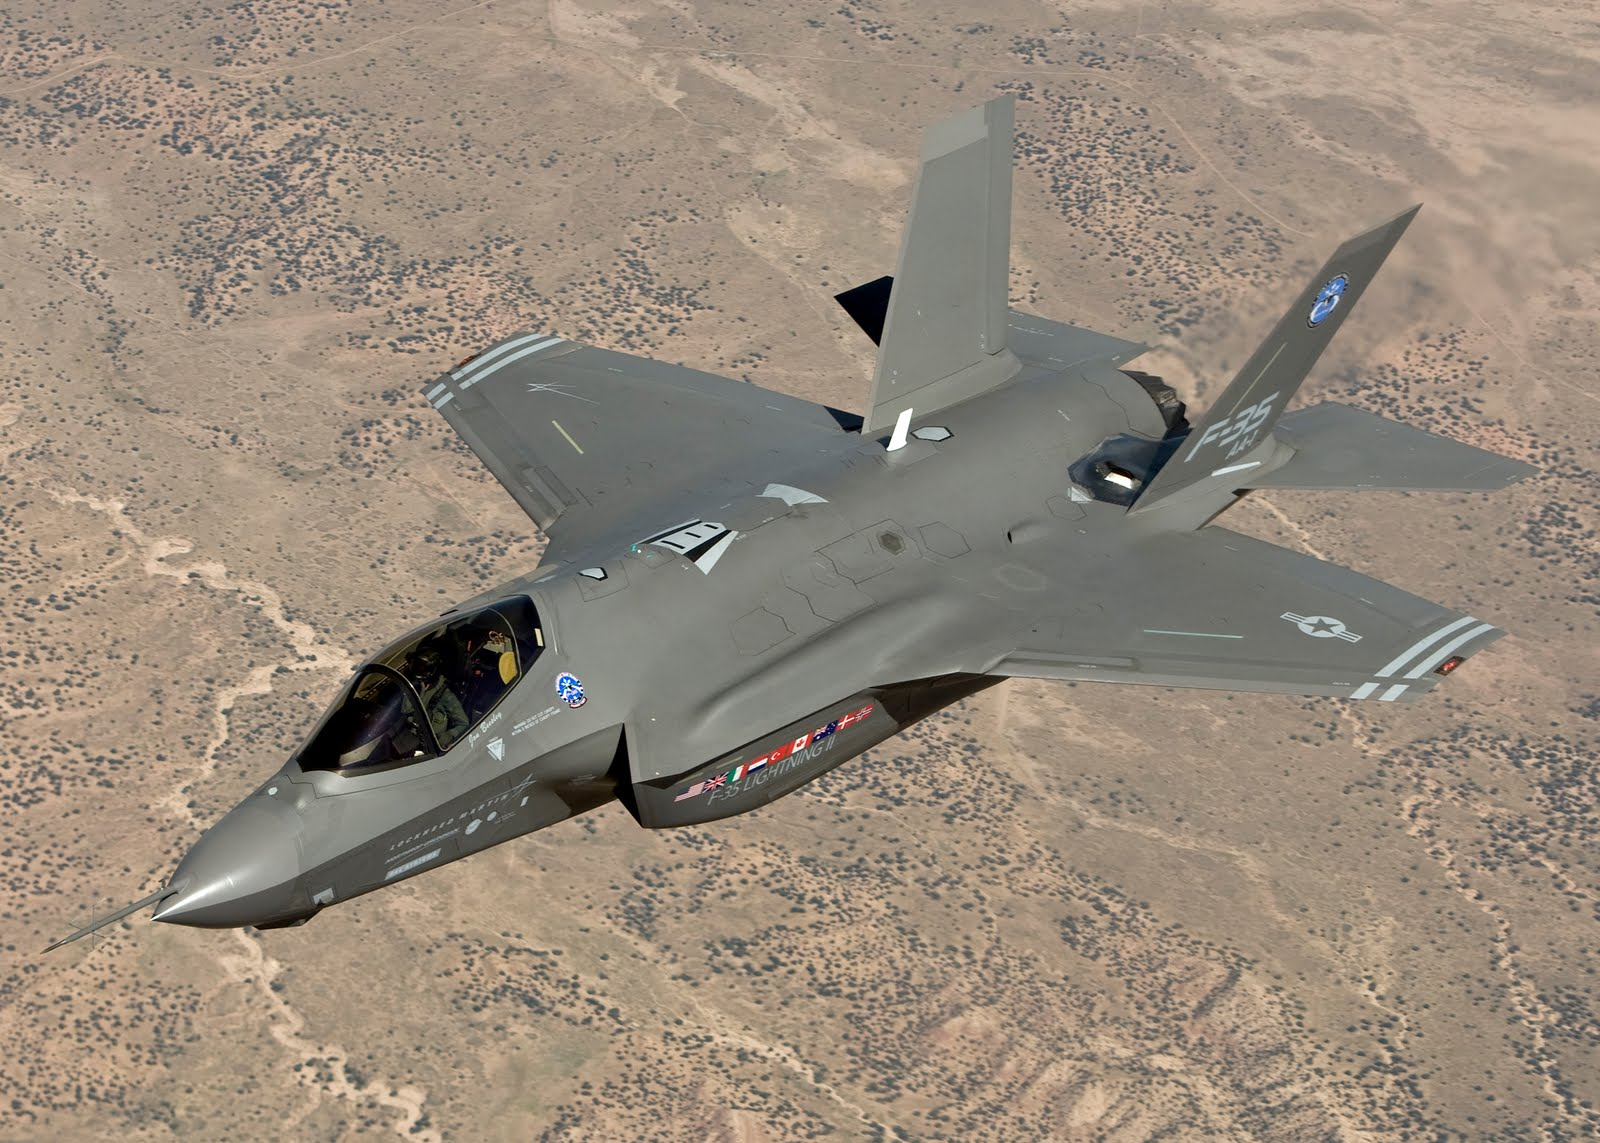 f 35 lightning ii joint strike fighter us military aircraft picture. Black Bedroom Furniture Sets. Home Design Ideas